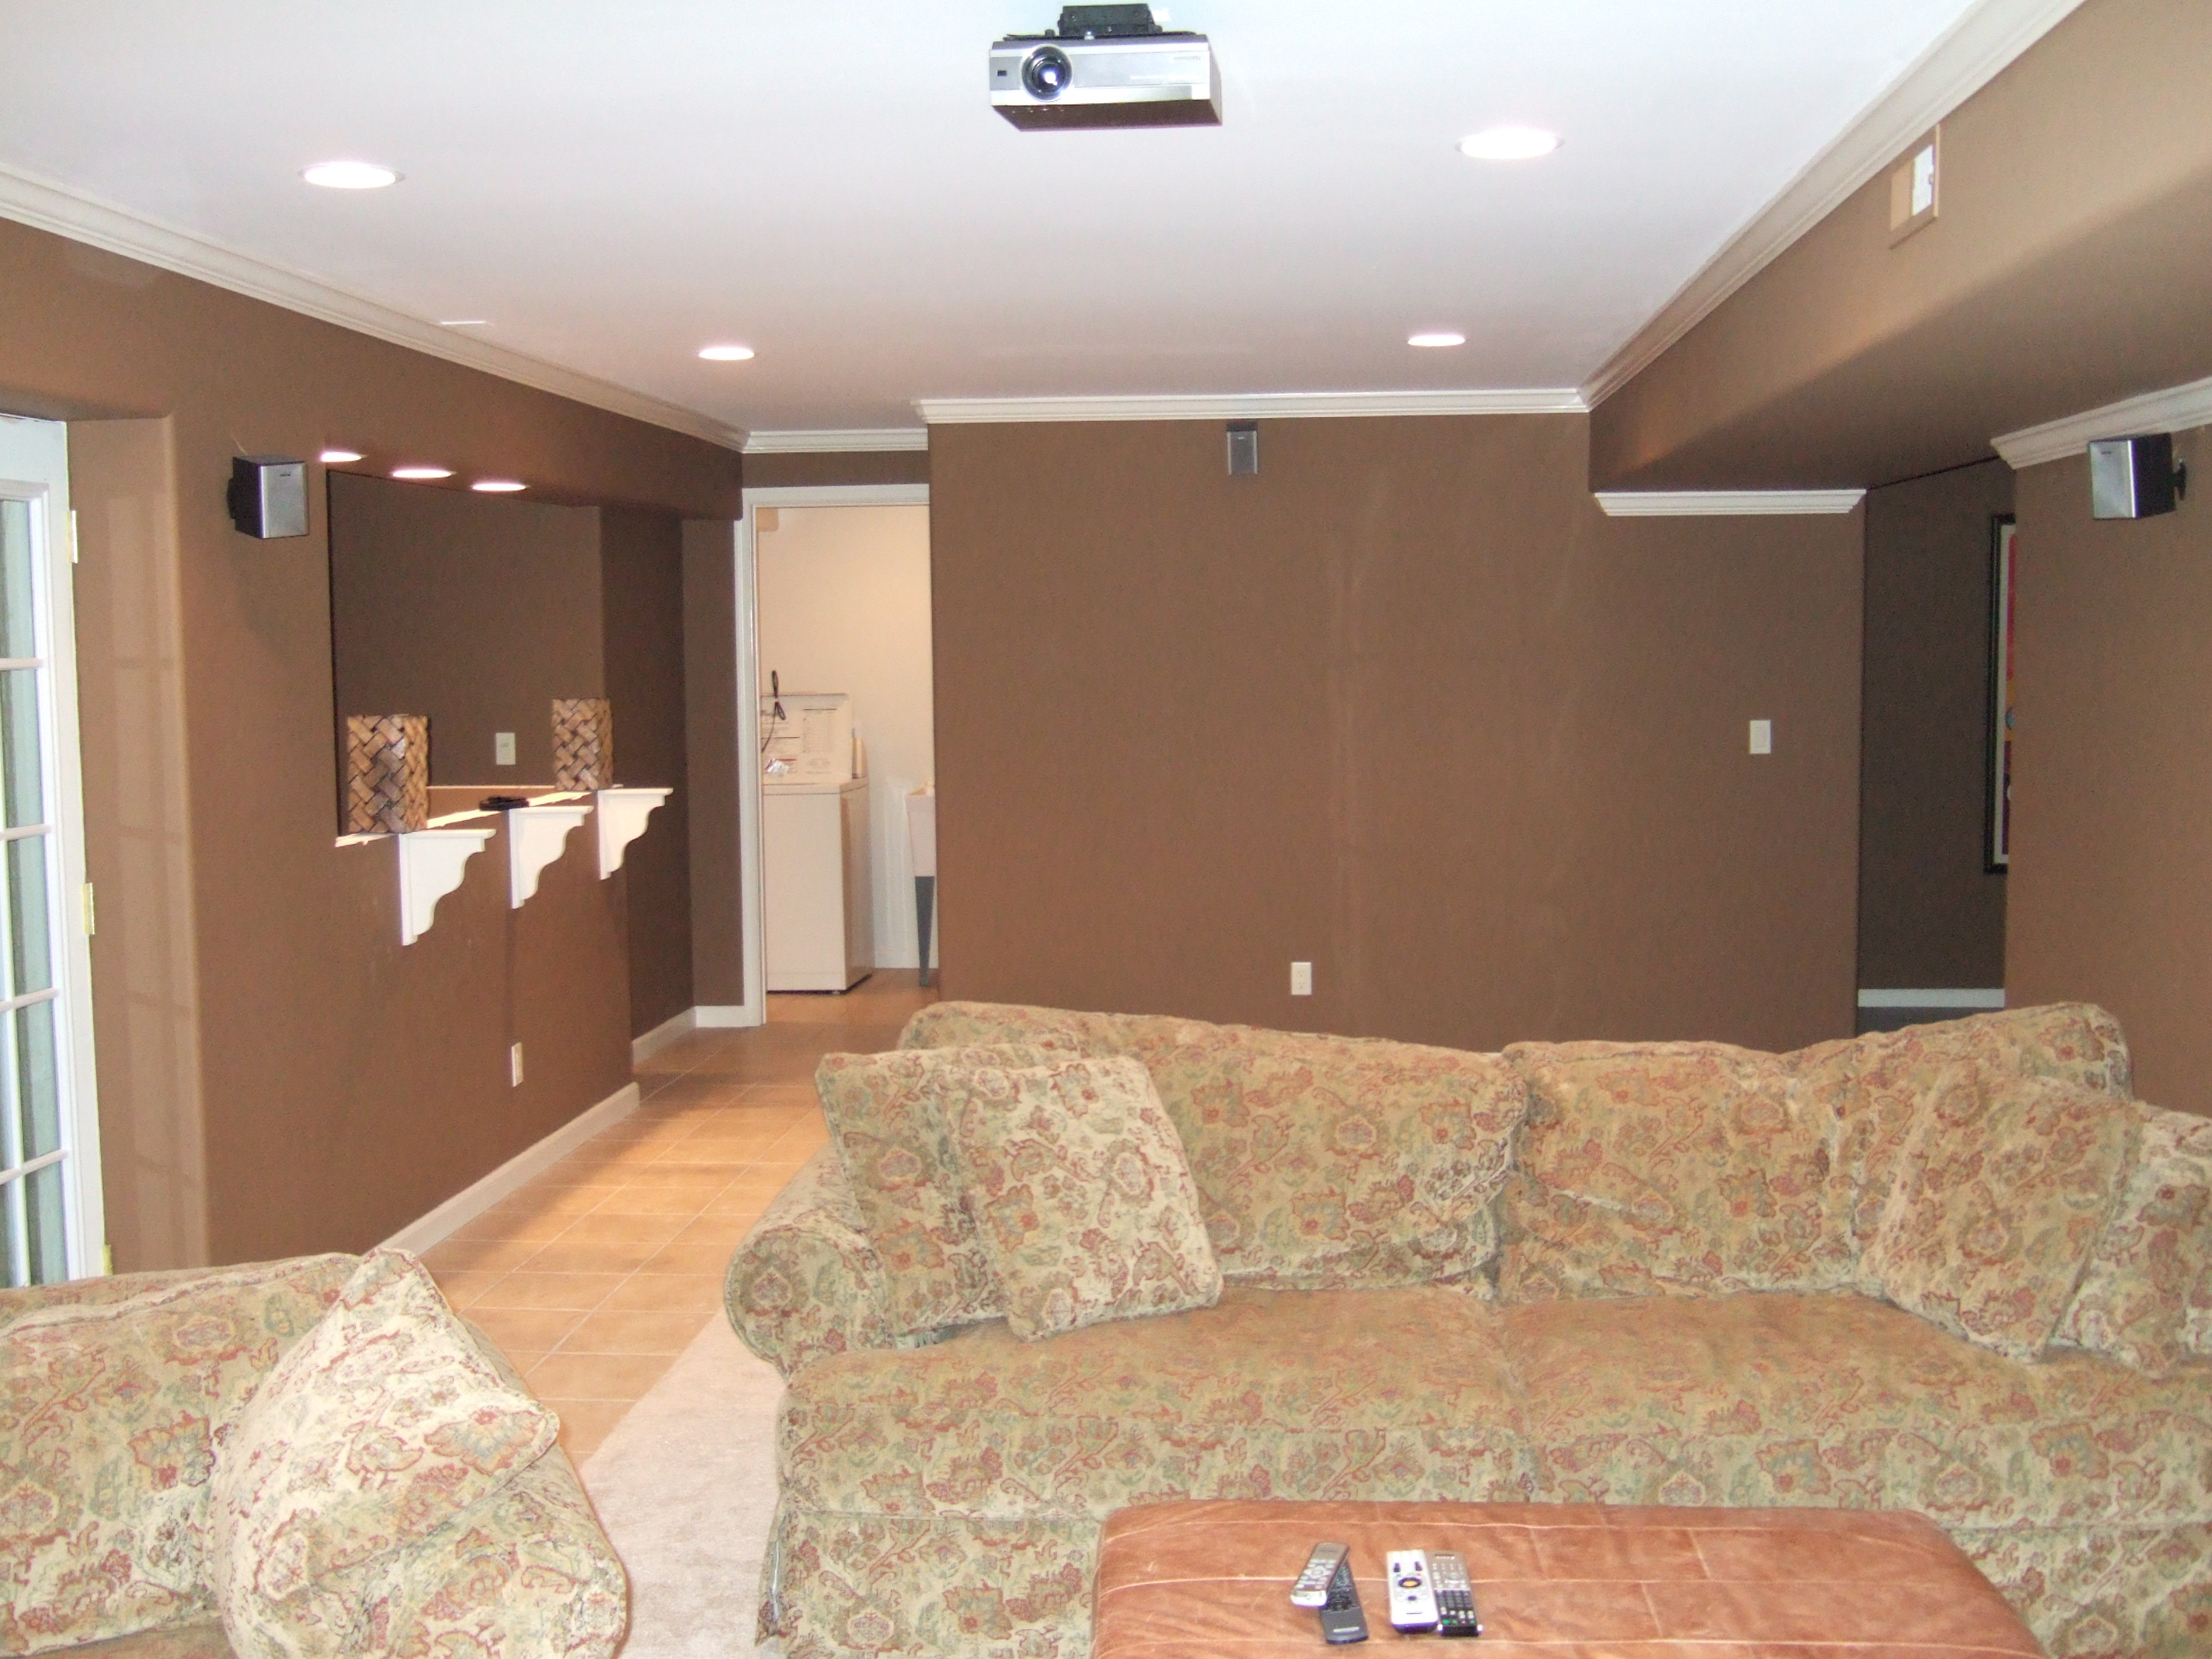 Finished Basement remodeling Fairfax Manassas Pictures Design Tile  title=